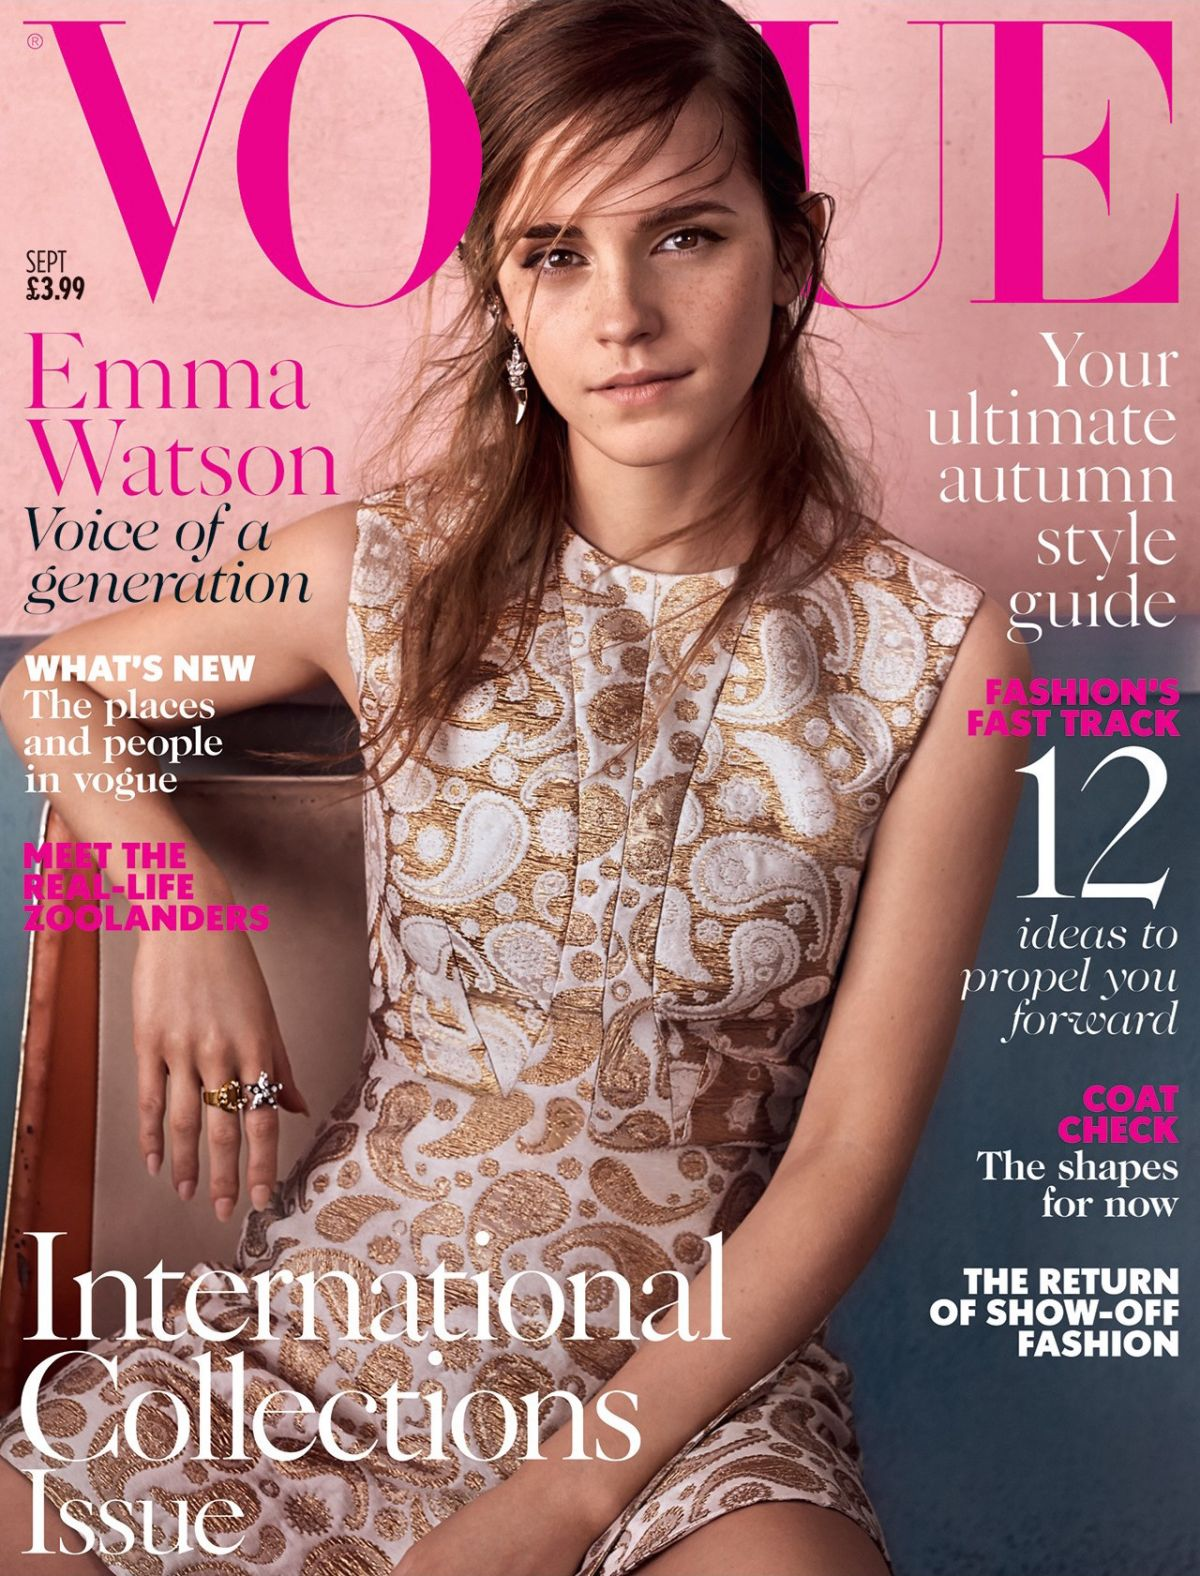 EMMA WATEON on the Cover of Vogue Magazine, UK September 2015 Issue